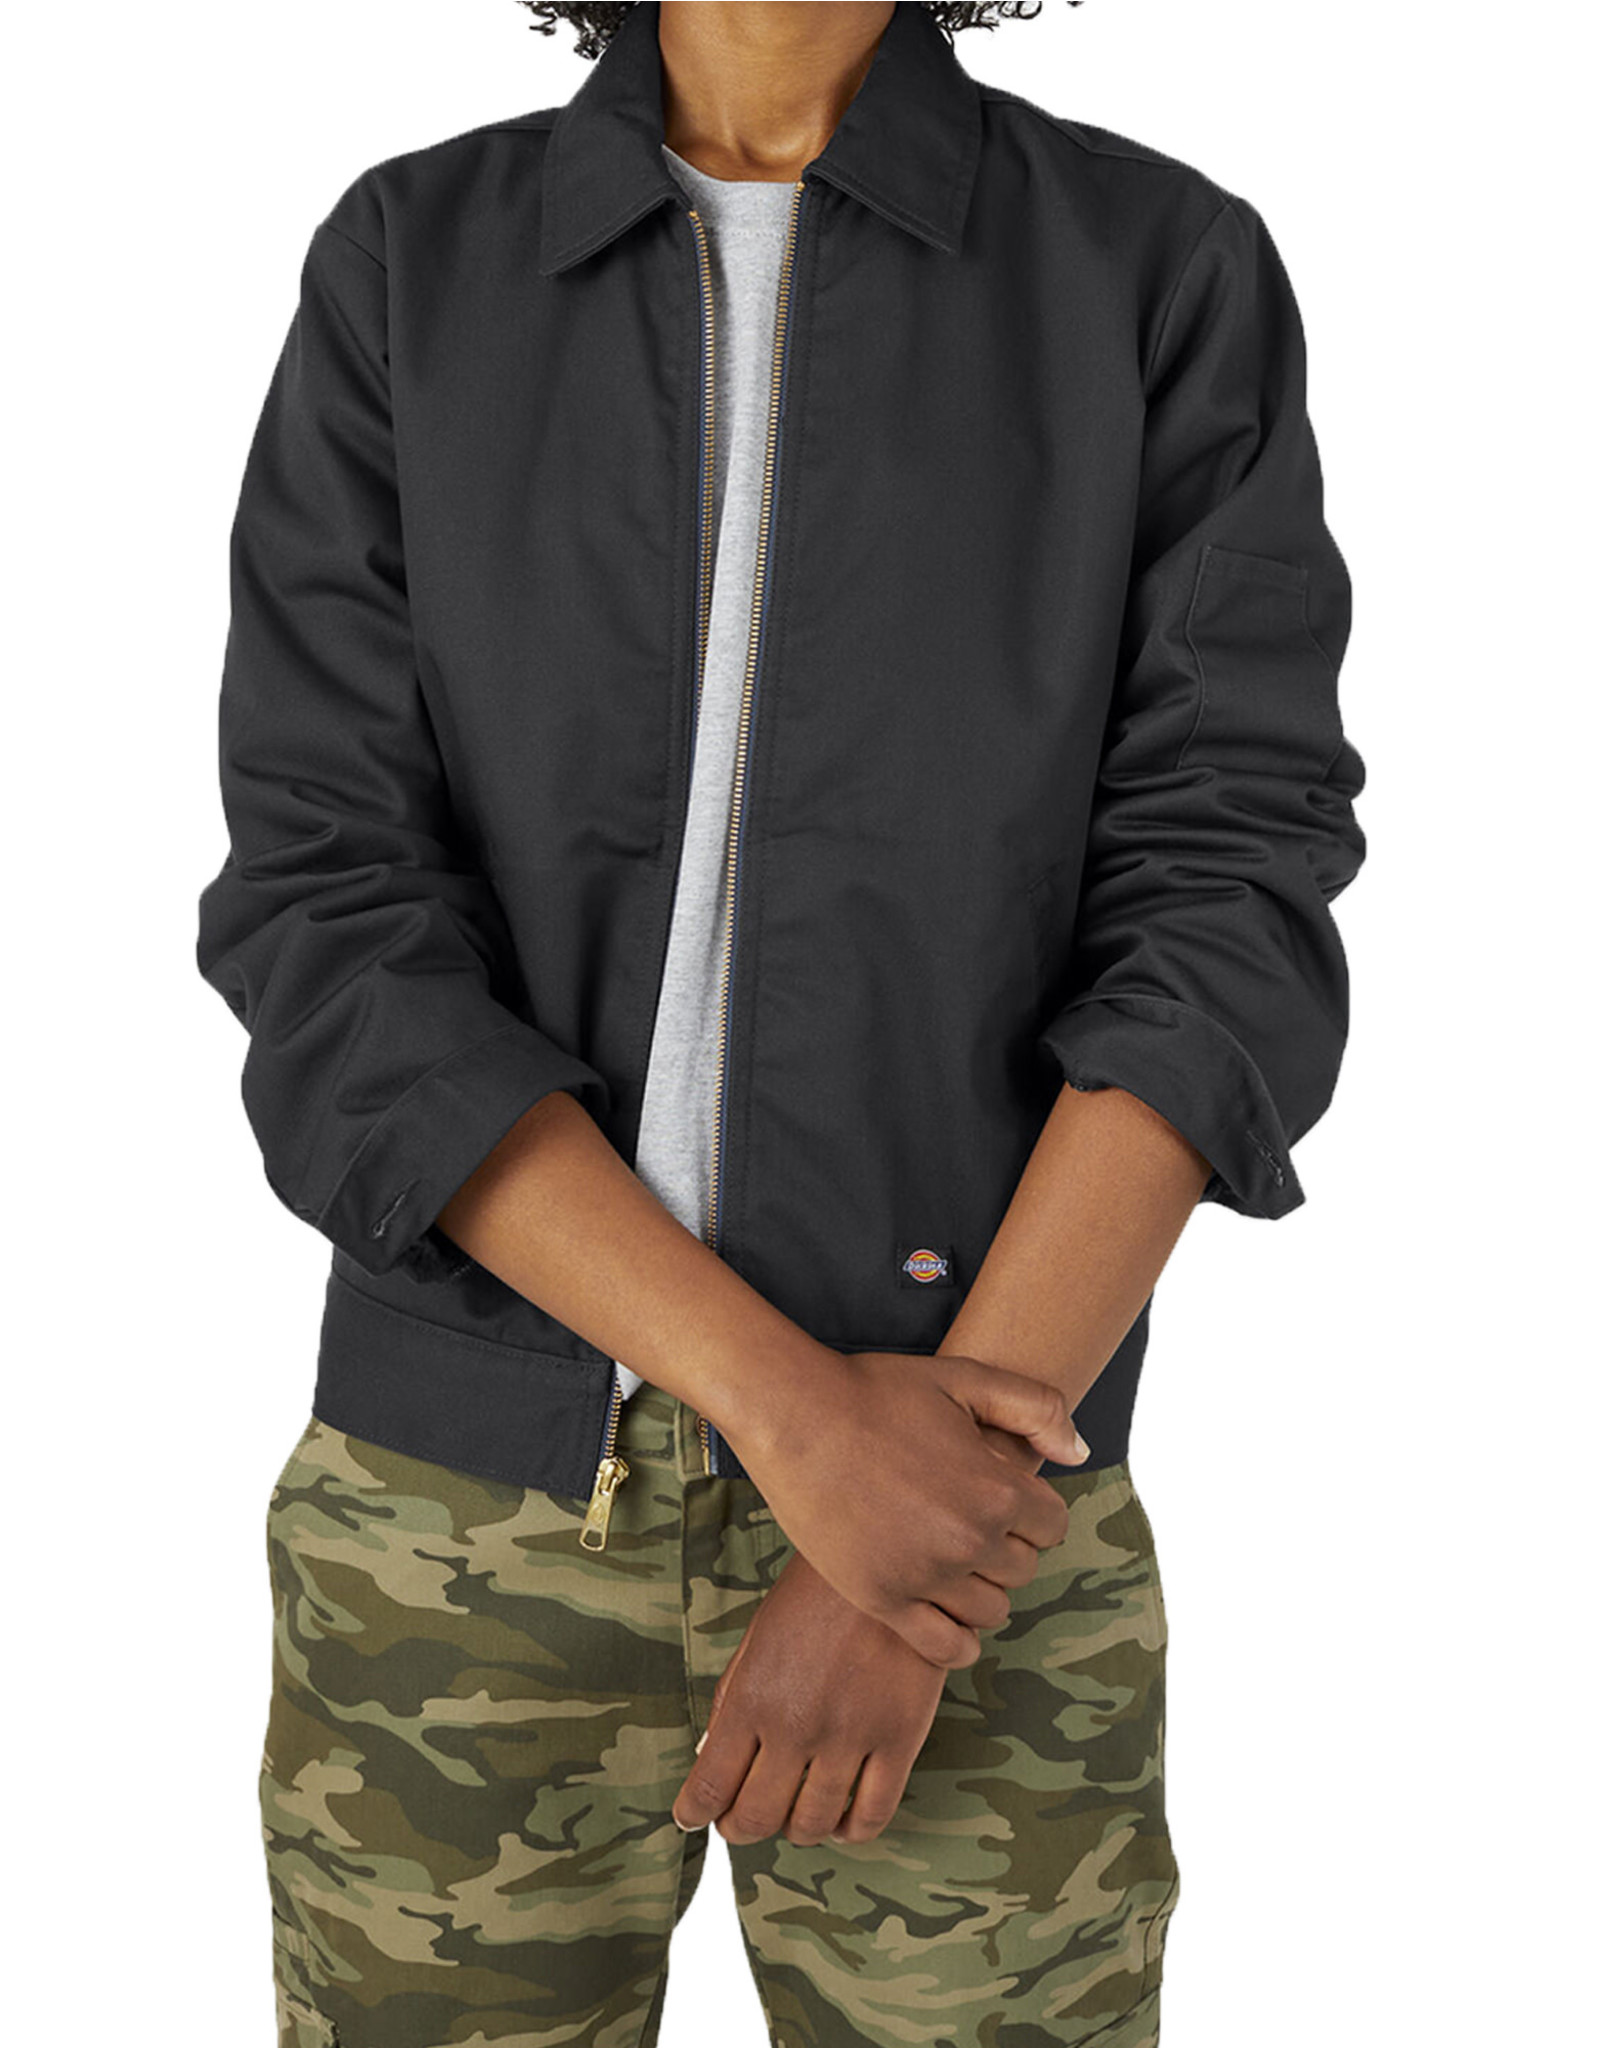 DICKIES Women's Eisenhower Insulated Jacket FJ15